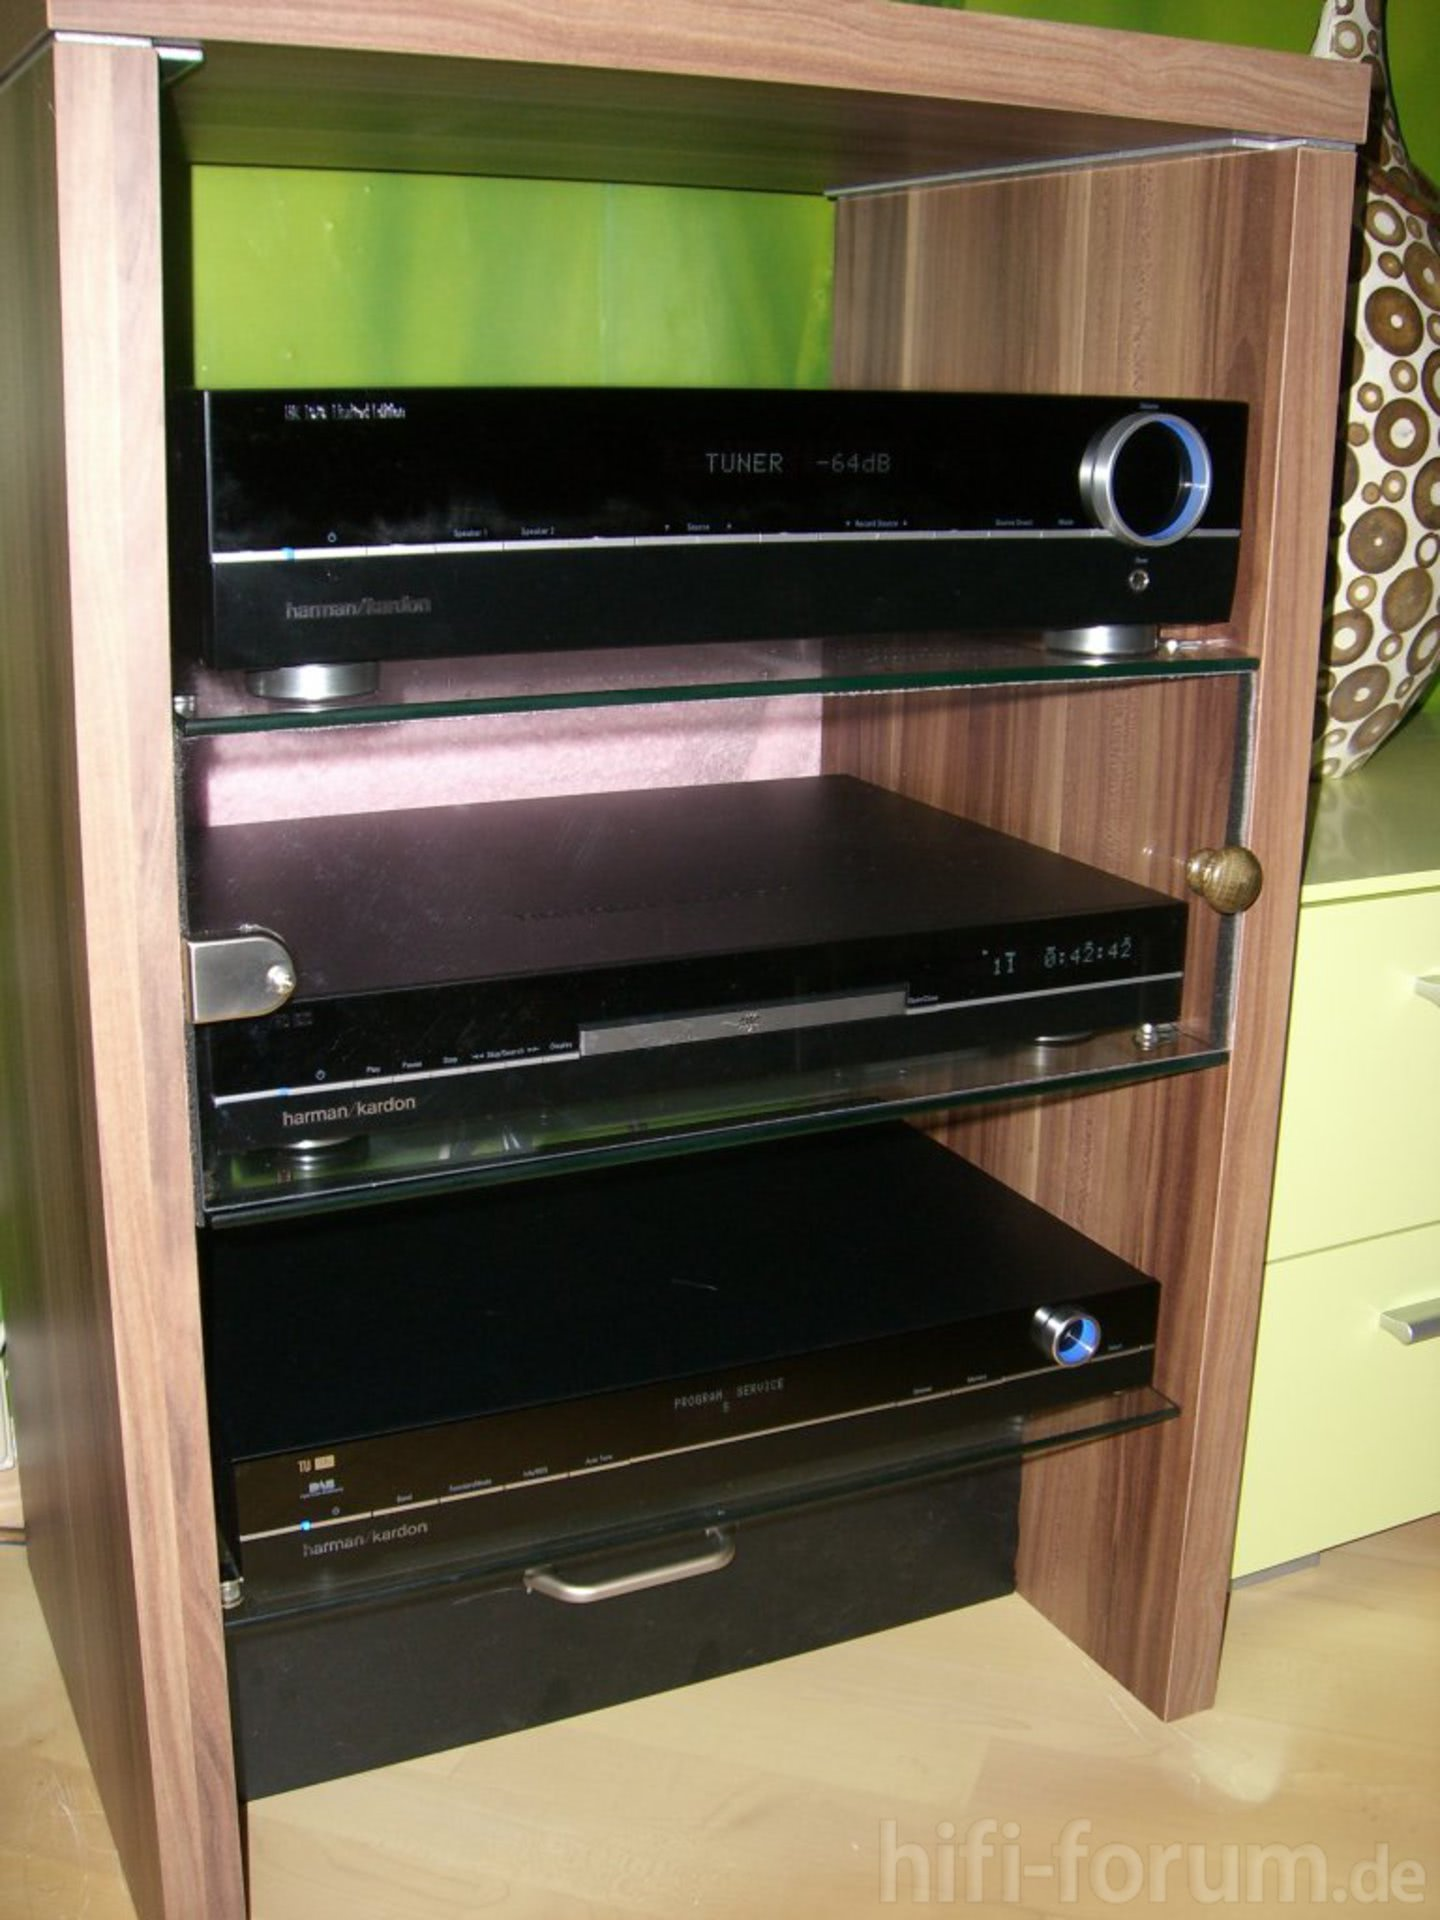 harman kardon anlage mit cd player unter glas anlage. Black Bedroom Furniture Sets. Home Design Ideas